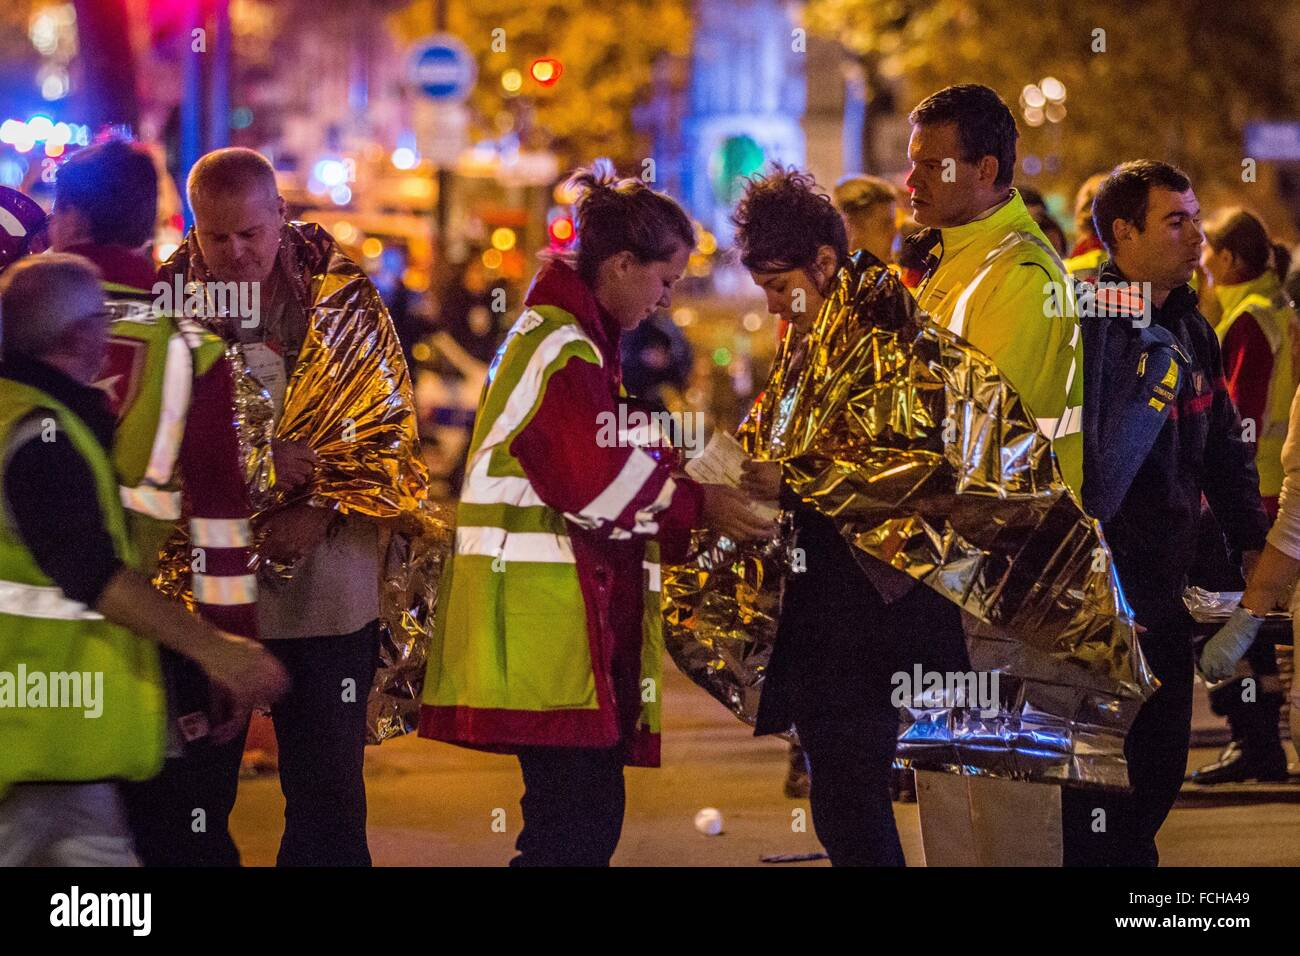 PARIS TERRORIST ATTACK AT THE BATACLAN COMMITTED BY MEMBERS OF ISIS, ISLAMIC STATE, 11TH ARRONDISSEMENT, PARIS (75), - Stock Image